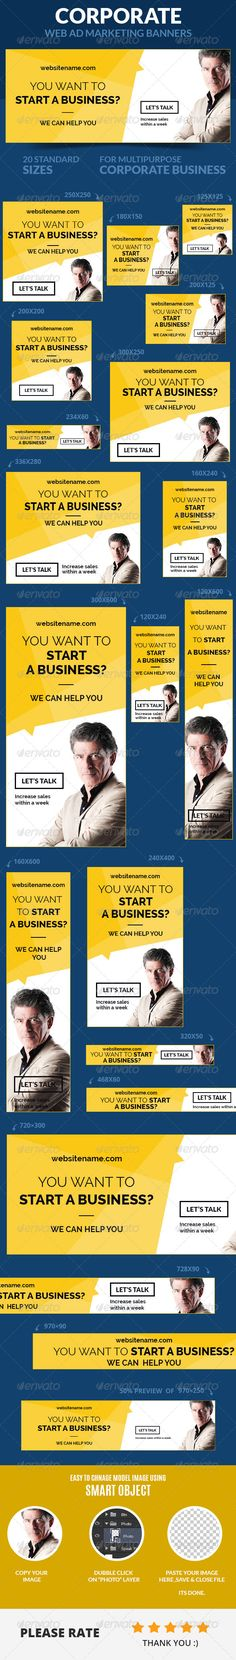 A set of Corporate Web Ad Marketing Banners is comes with 20 standard dimensions which also meet Google adwords banners sizes. It included all the layered psd file where you can easily change its text, color & shapes as per your requirements.